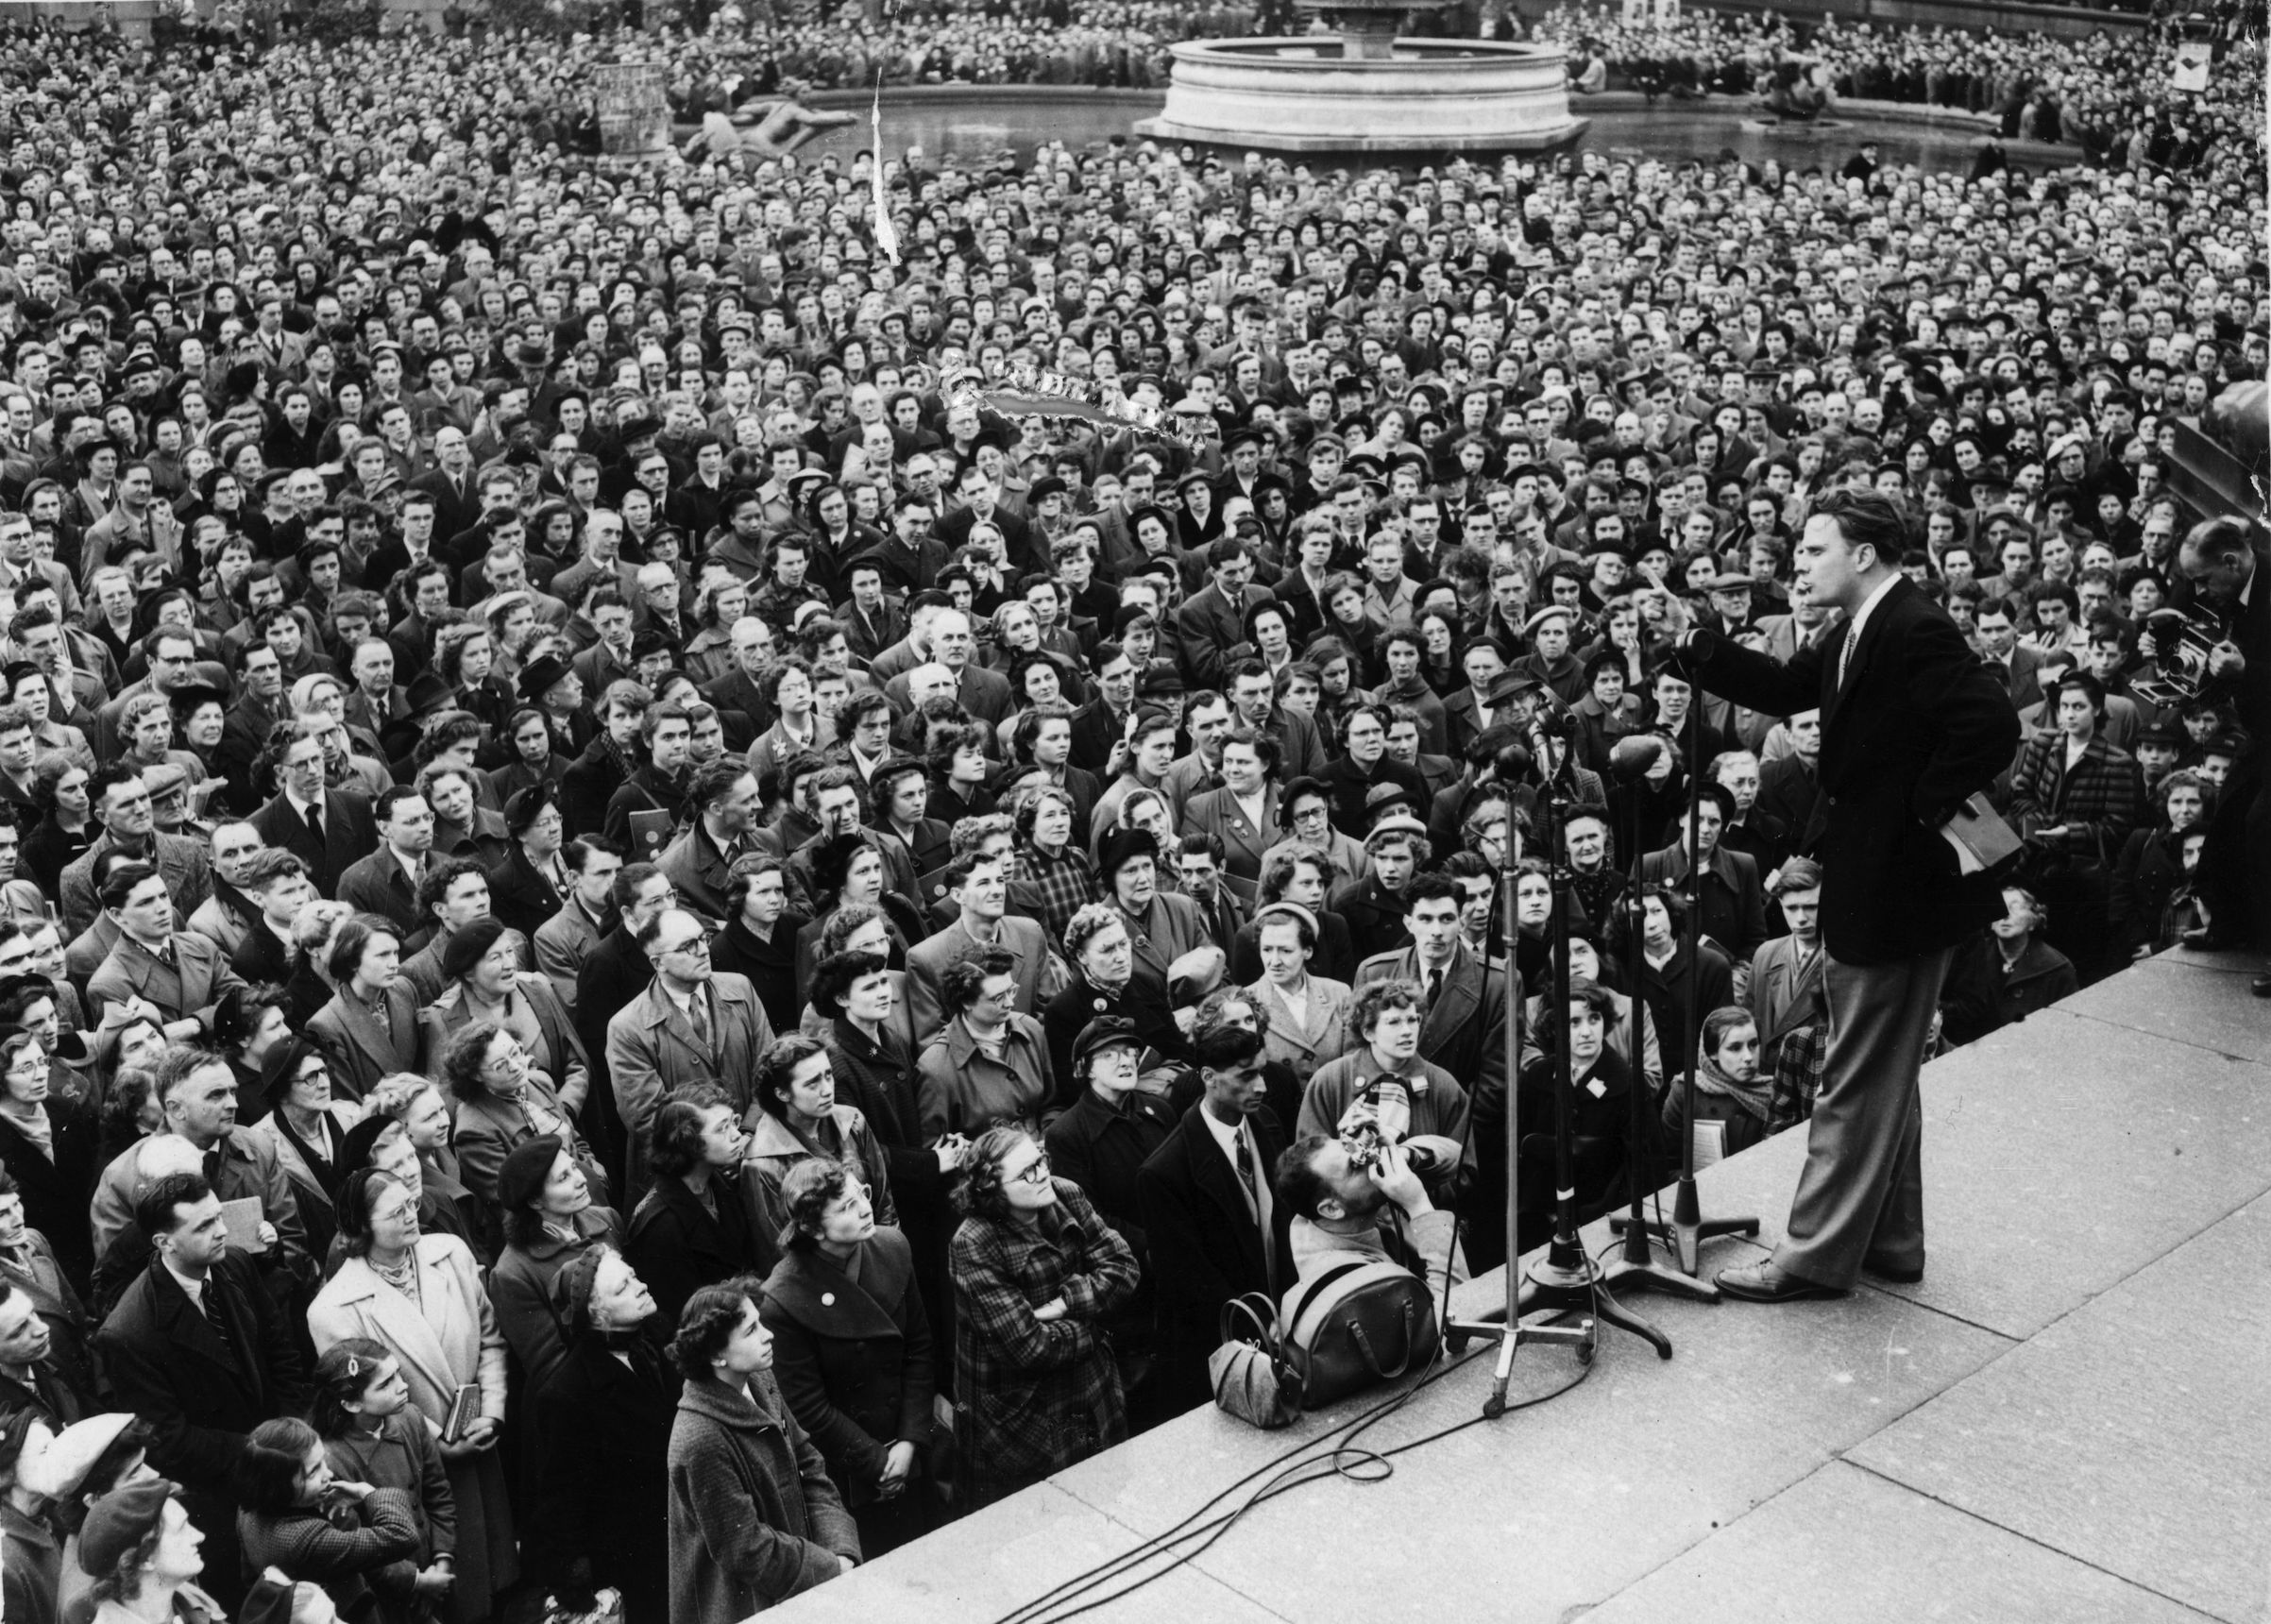 Evangelist Billy Graham addressing the congregation in Trafalgar Square in London in 1954